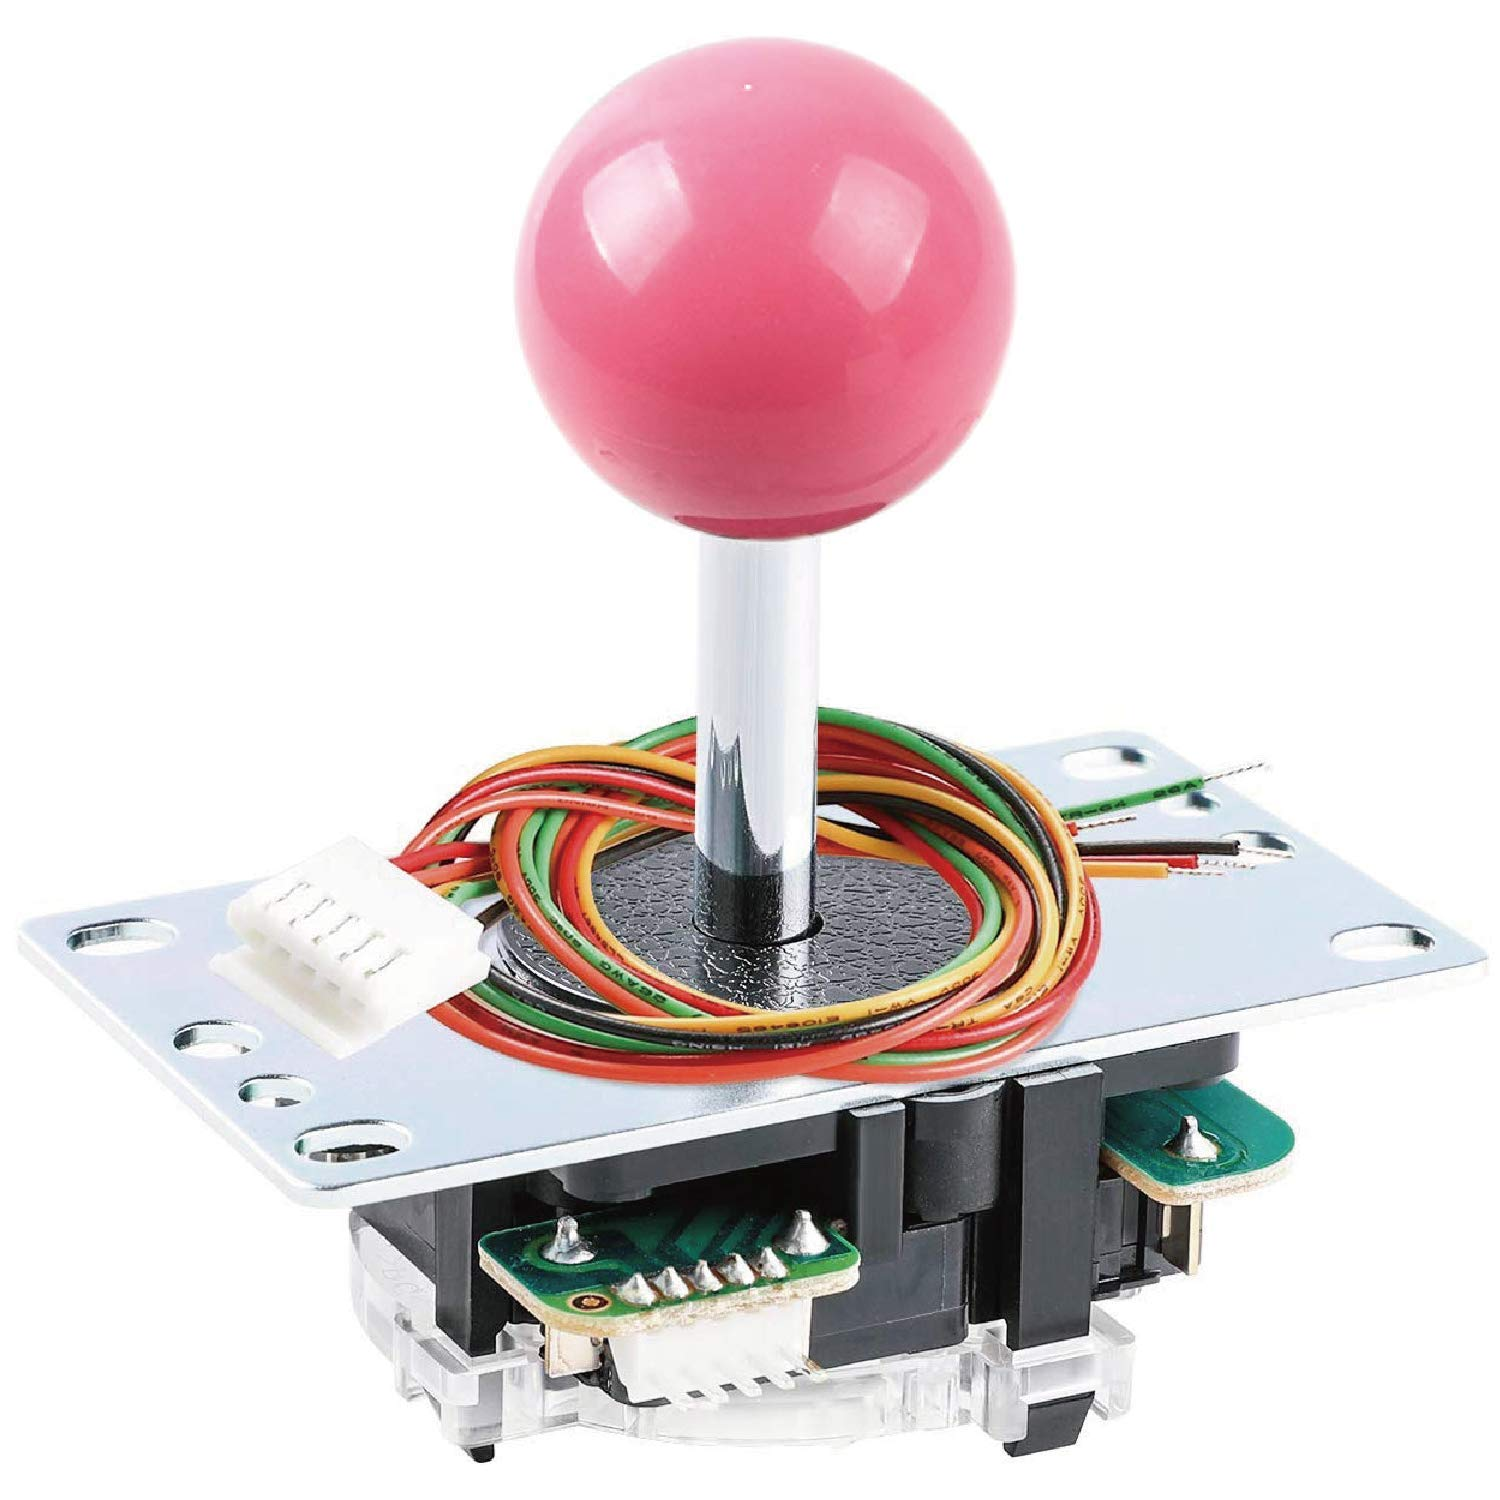 SANWA JLF-TP-8YT Joystick Pink Original - for Arcade Jamma Game 4 & 8 Way Adjustable, Compatible with Catz Mad SF4 Tournament Joystick (Pink Ball Top), Use for Arcade Game Machine Cabinet S@NWA